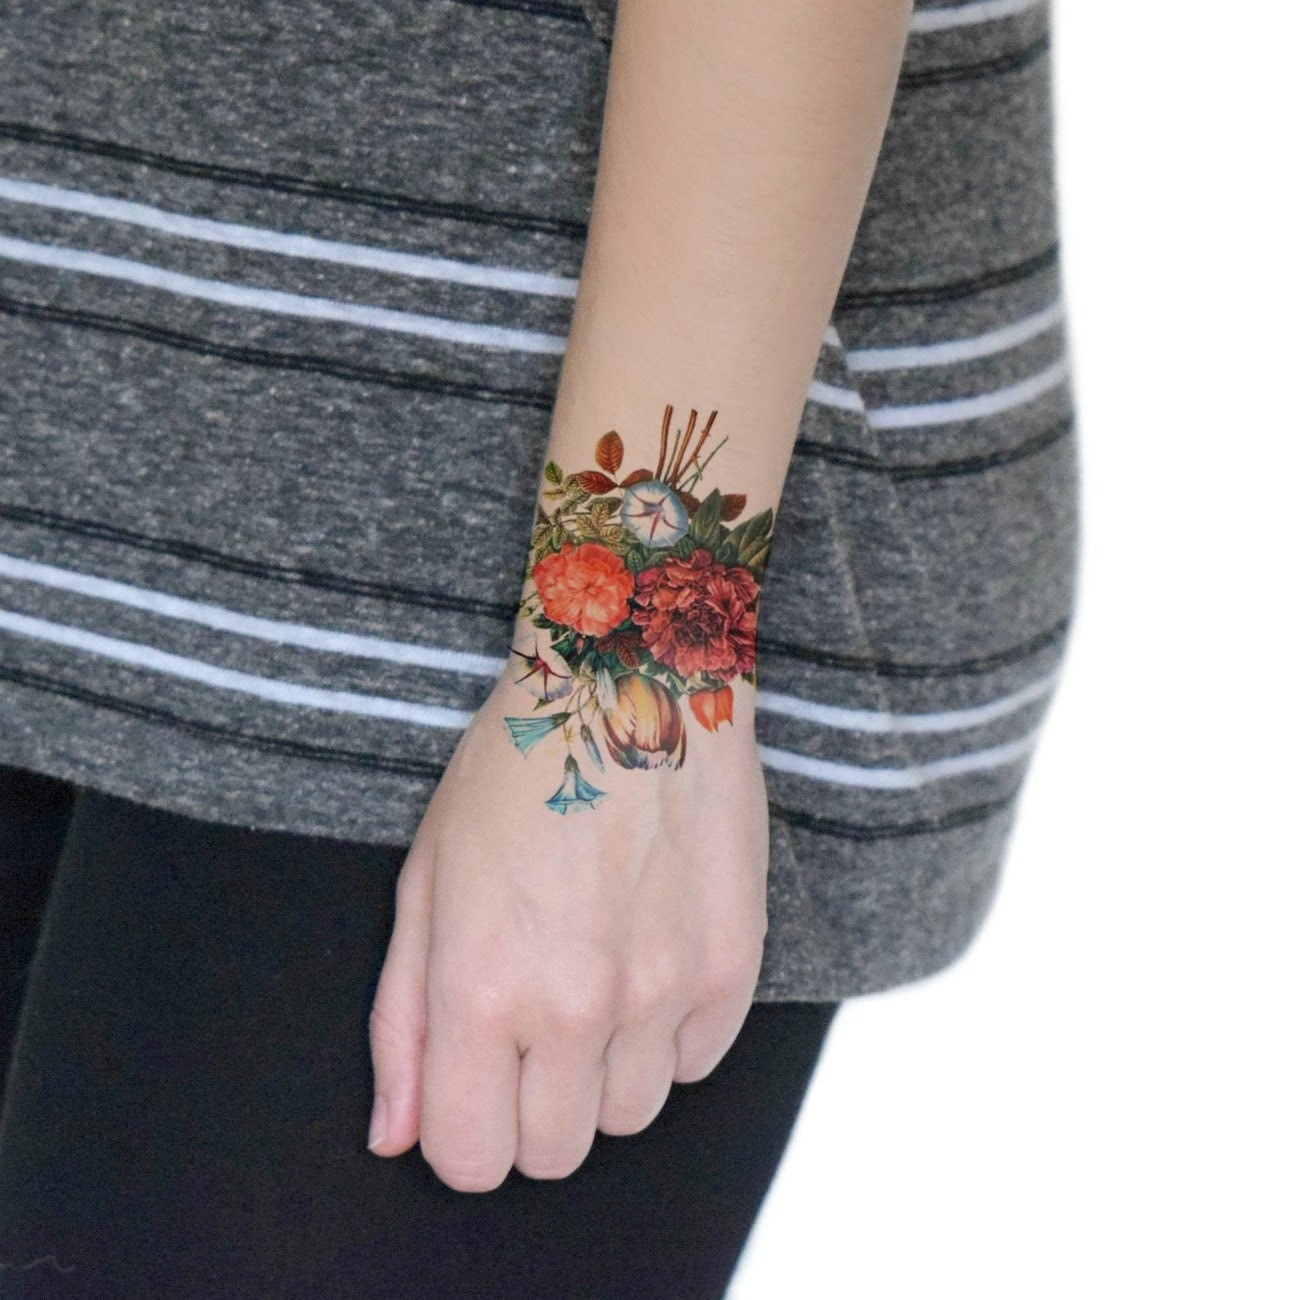 Vintage floral temporary tattoo floral temporary tattoo for Vintage floral tattoo